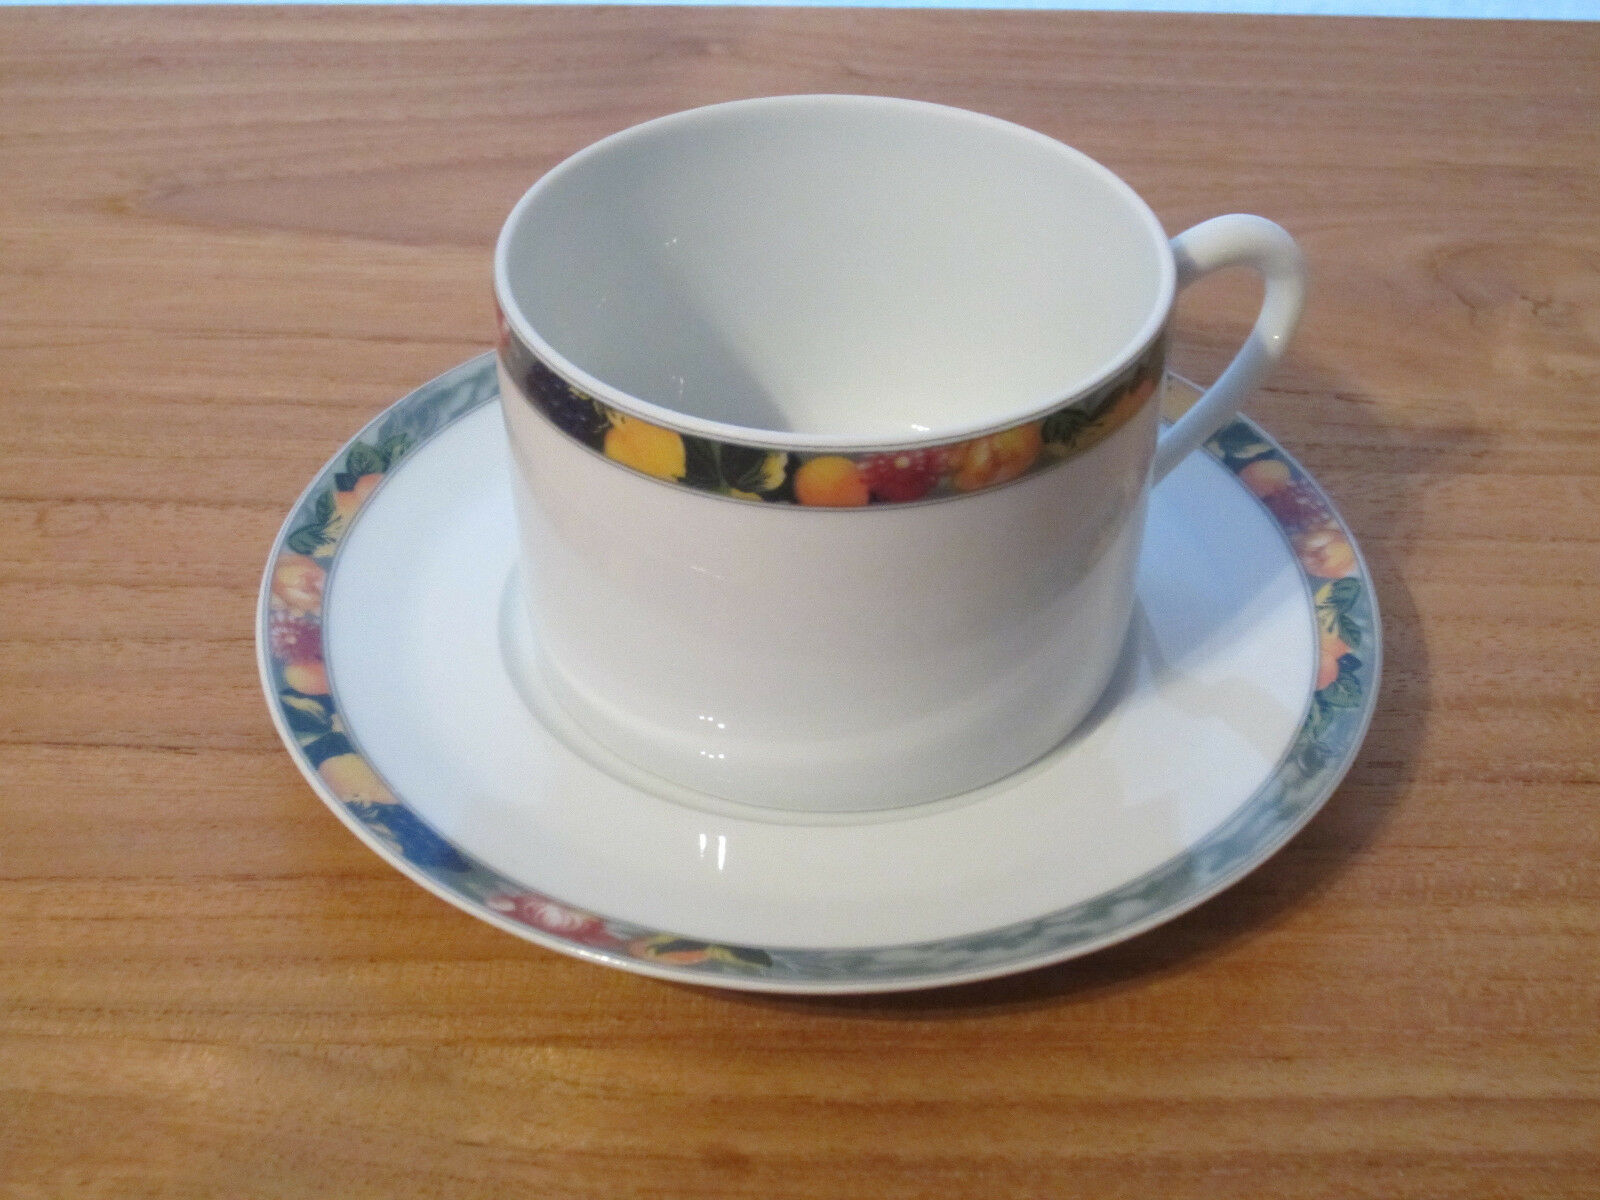 PORCELAINE CNP NEW OXFORD VERGERS 1 tasse + soucoupe 1 cup